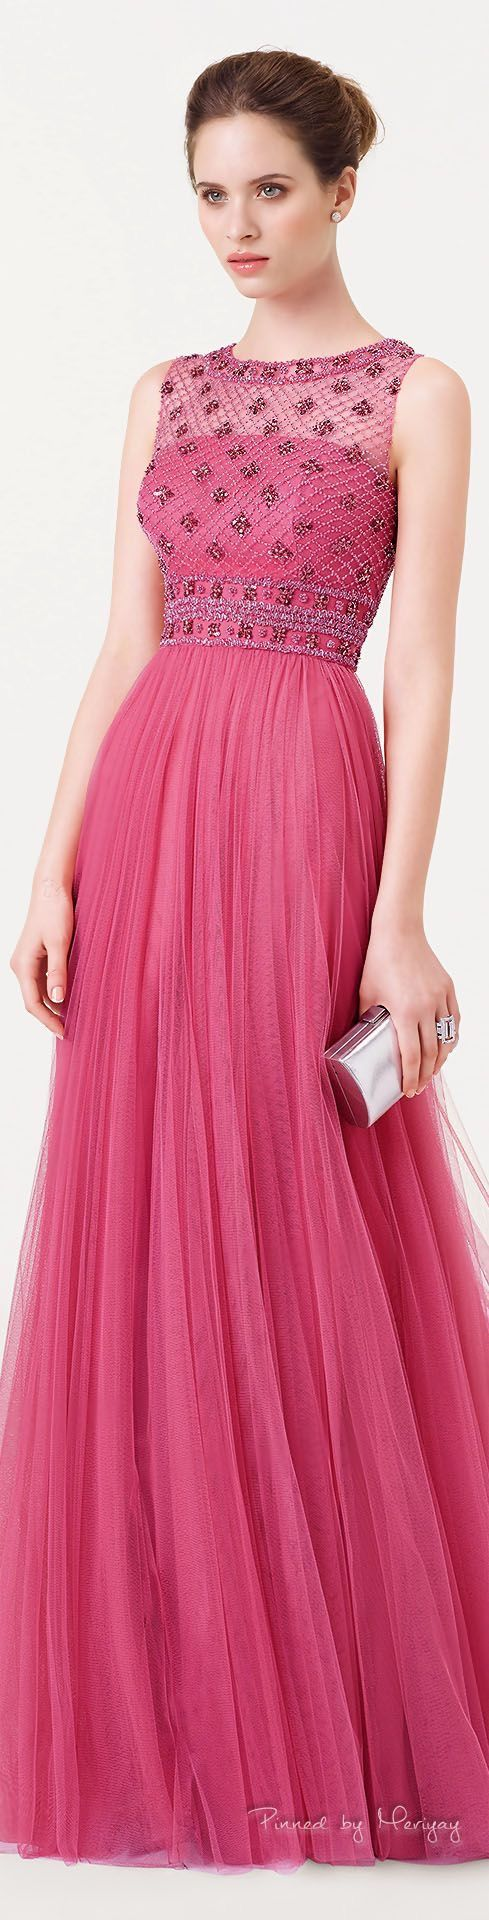 24 best ropa images on Pinterest | Night out dresses, Party dresses ...